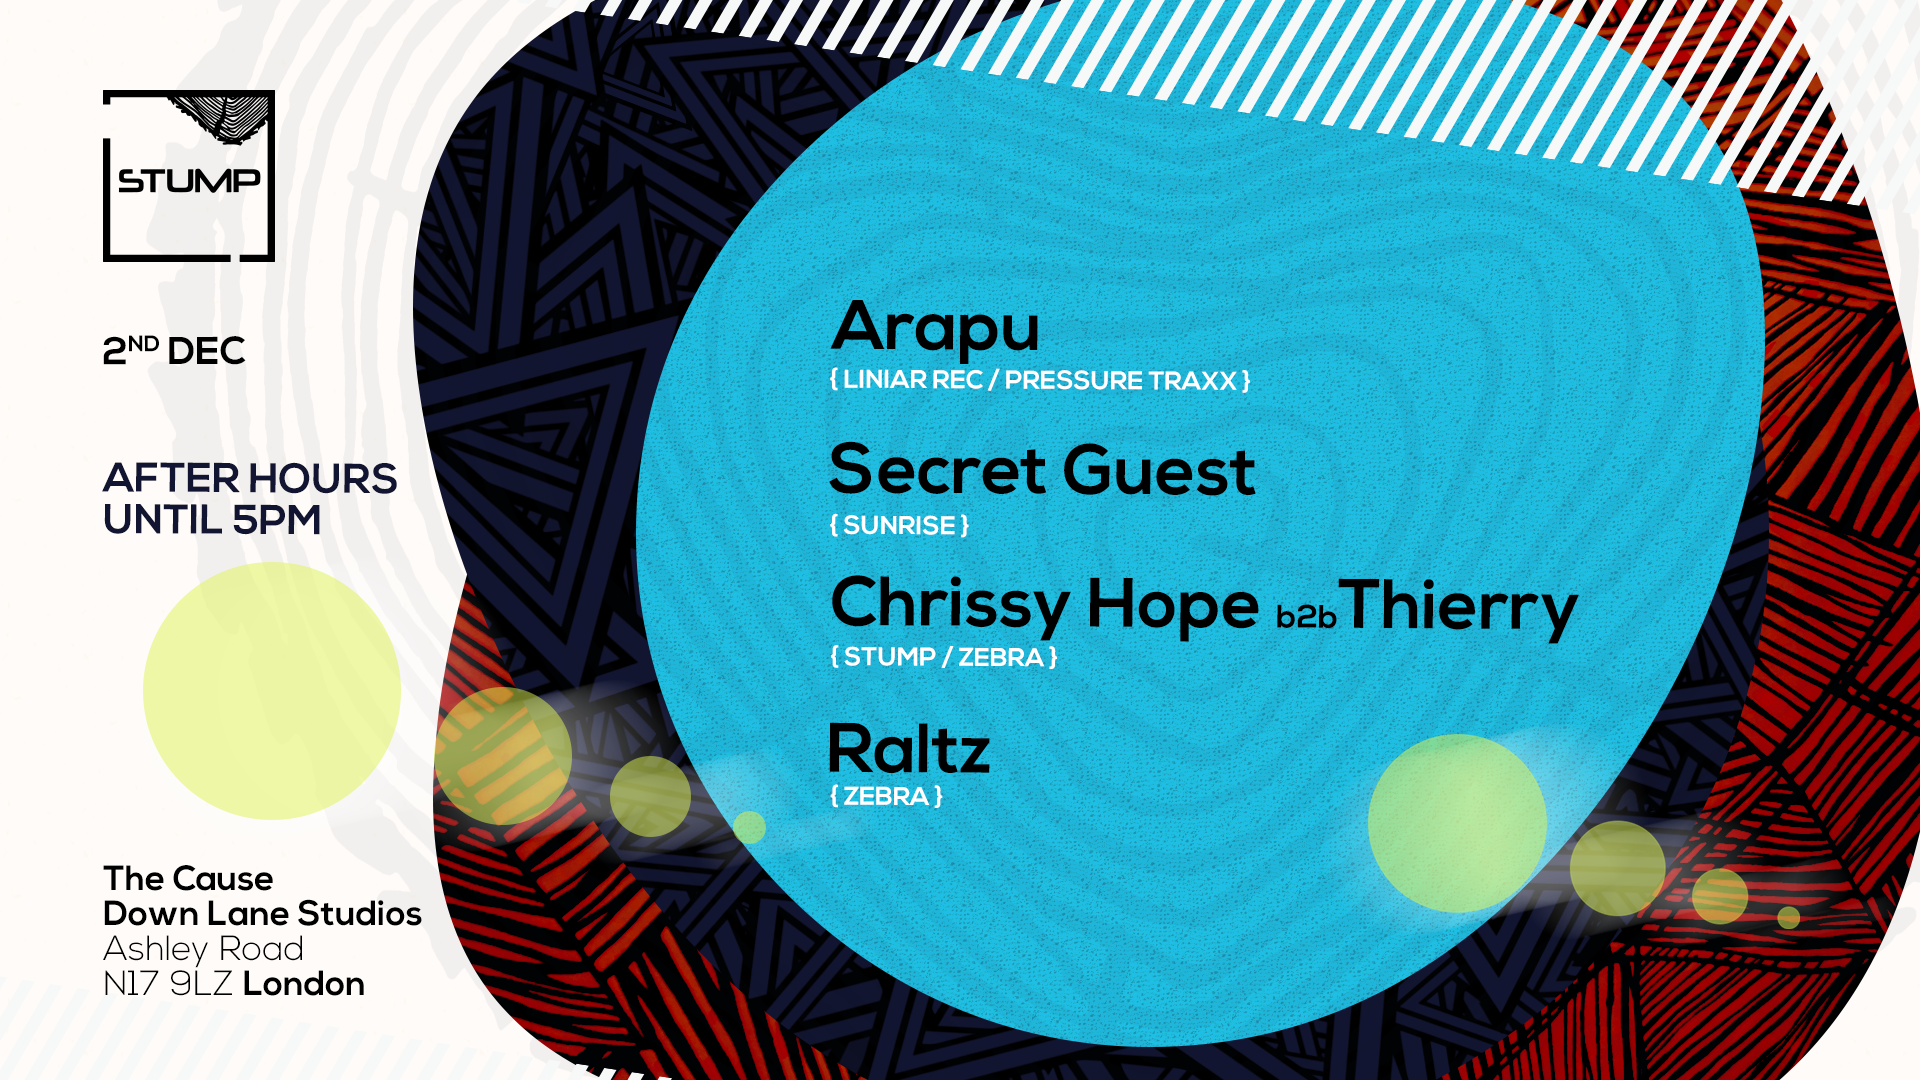 Tickets for 02-12-2018 - Stump Afterparty with Arapu Raltz Chrissy Hope Thierry Secret guest